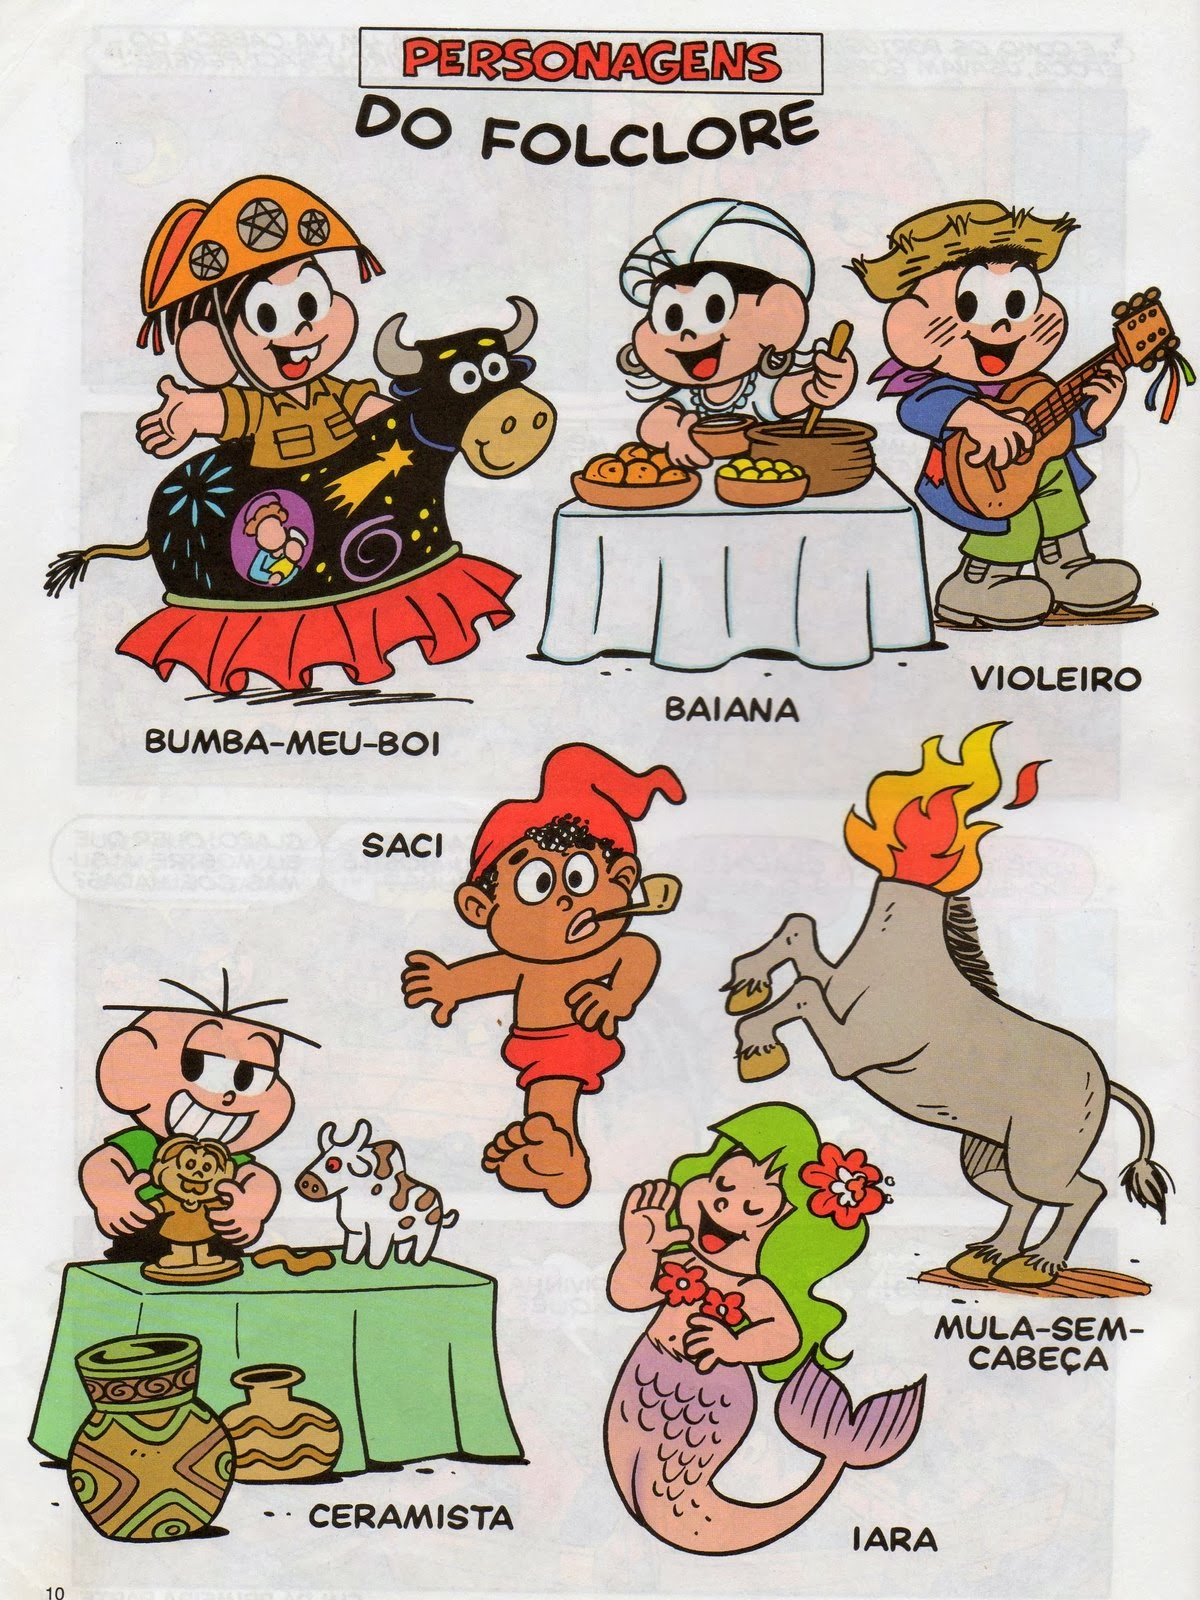 Personagens do Folclore - Turma da Mônica